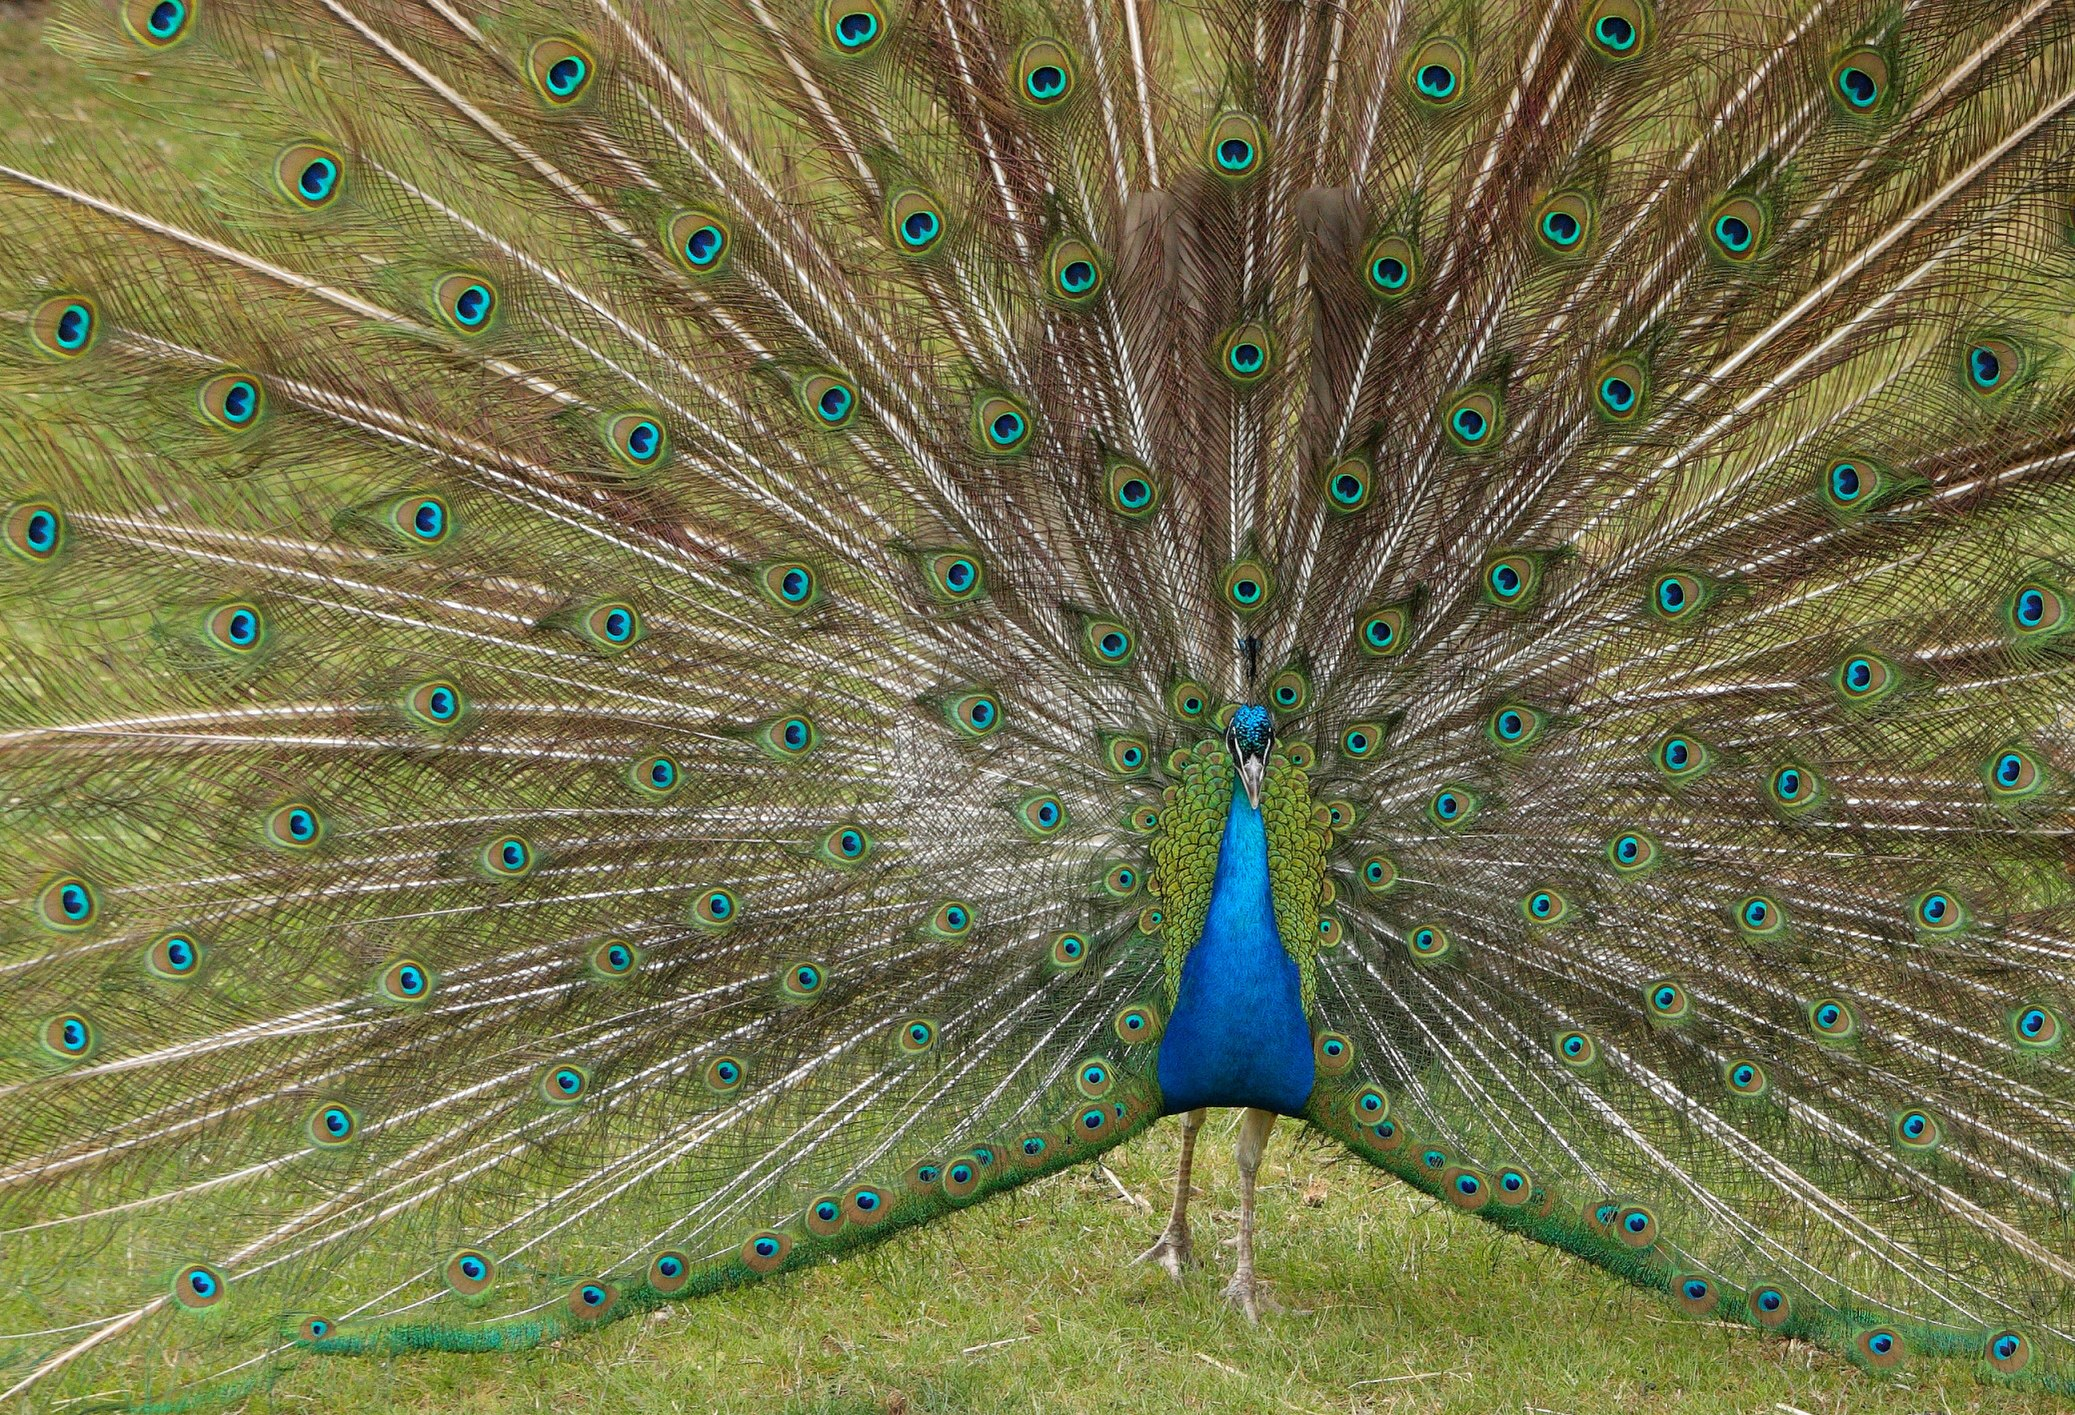 Indian peafowl - The complete information and online sale